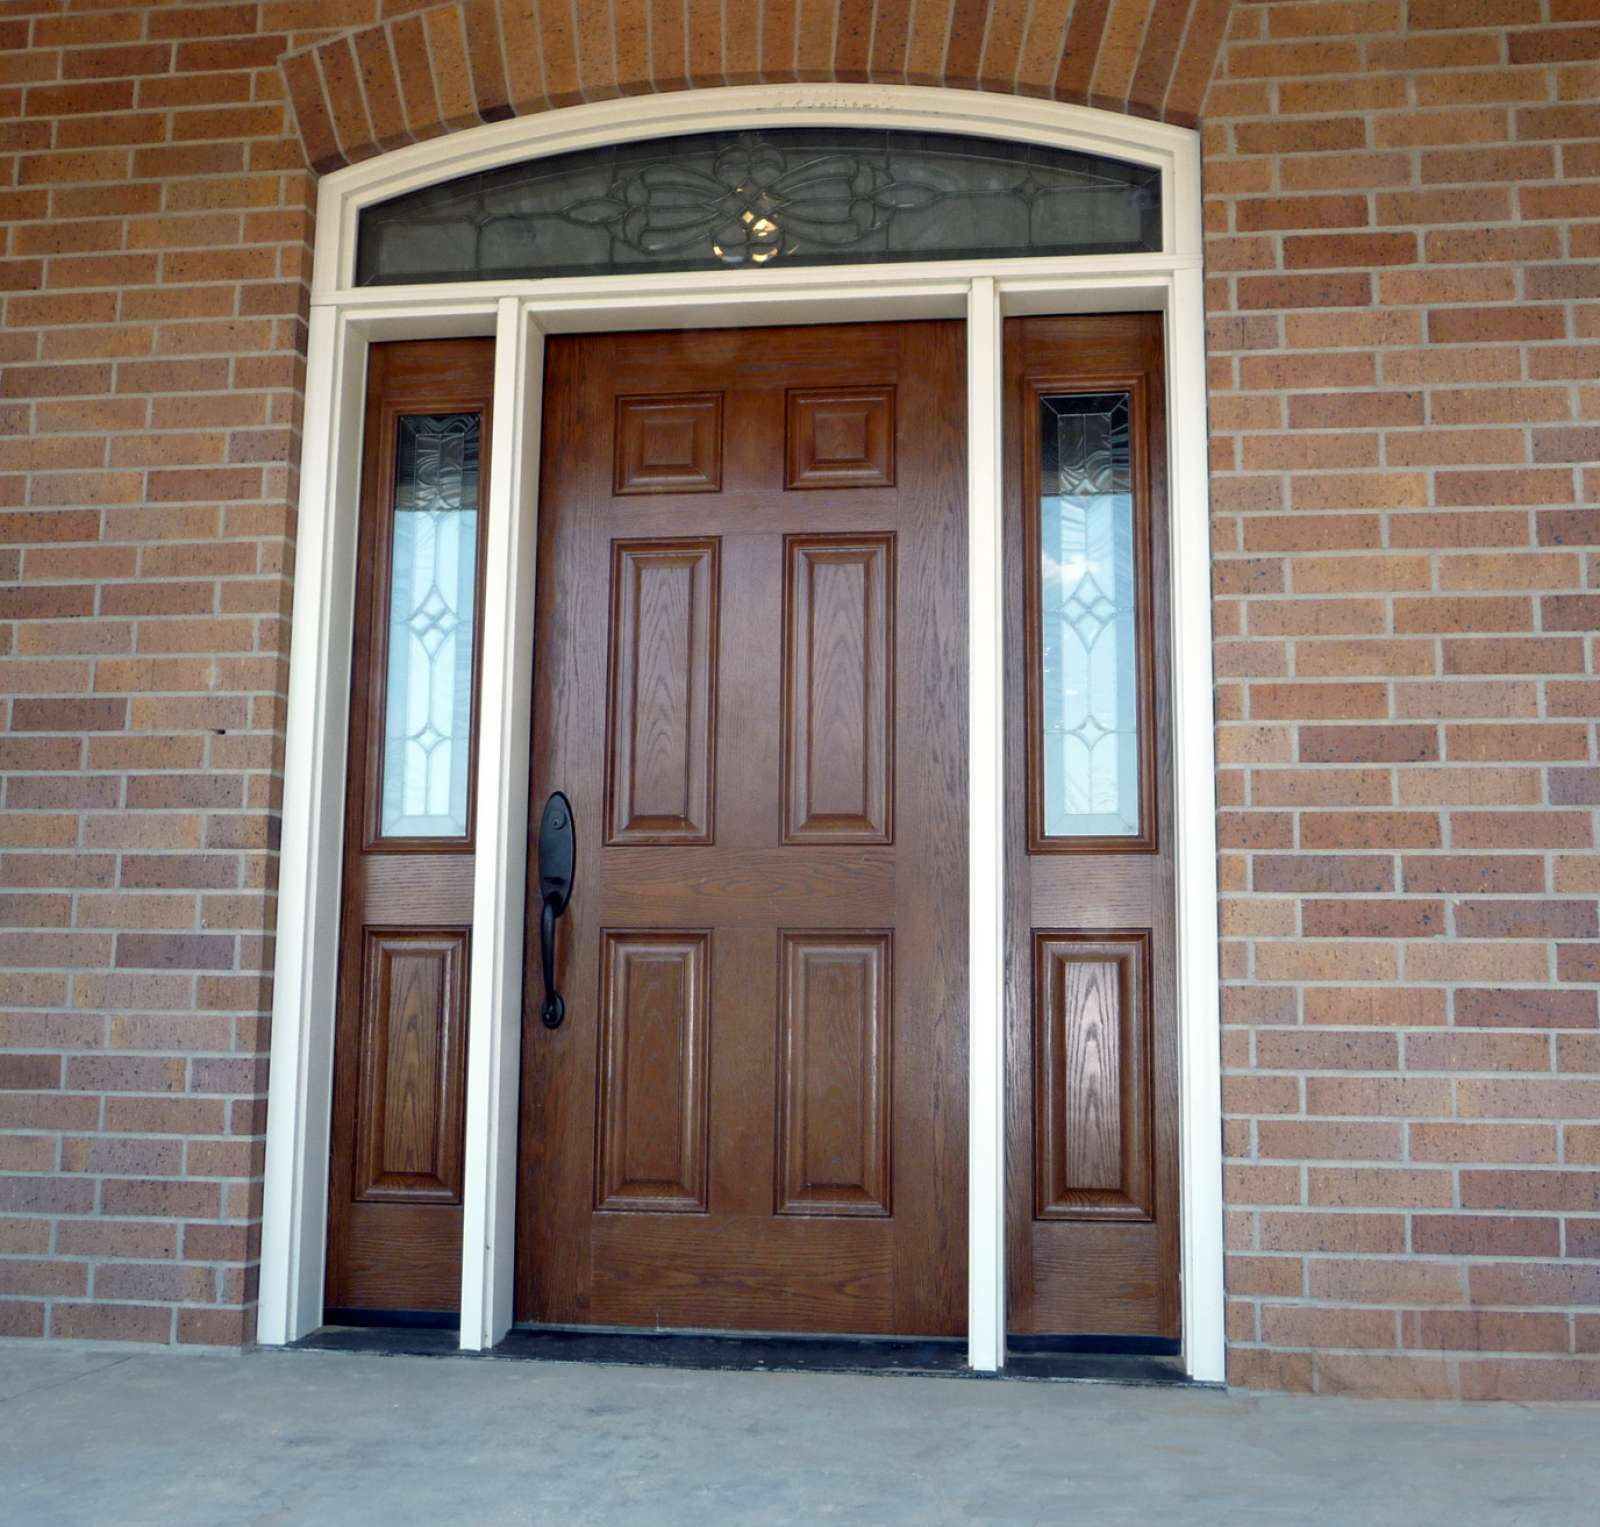 1527 #664230 Signet® Fiberglass Entry Doors Doors Entry Doors Products  picture/photo Fibreglass Exterior Doors 41191600